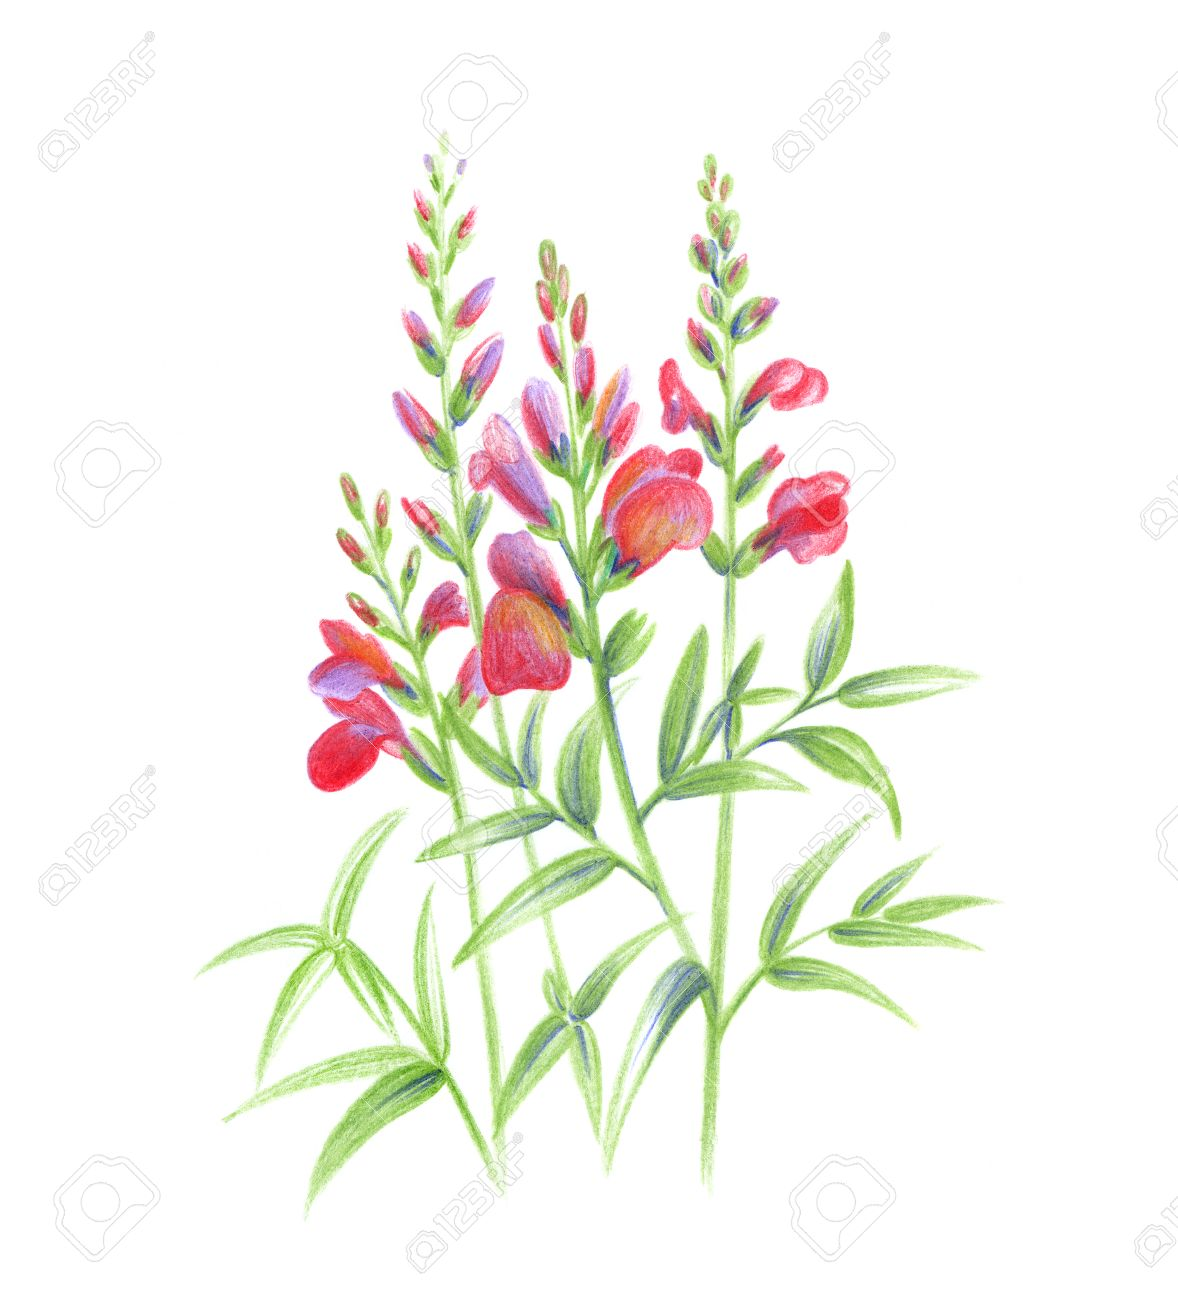 Snapdragon Flower Drawing at GetDrawings.com | Free for personal use ...